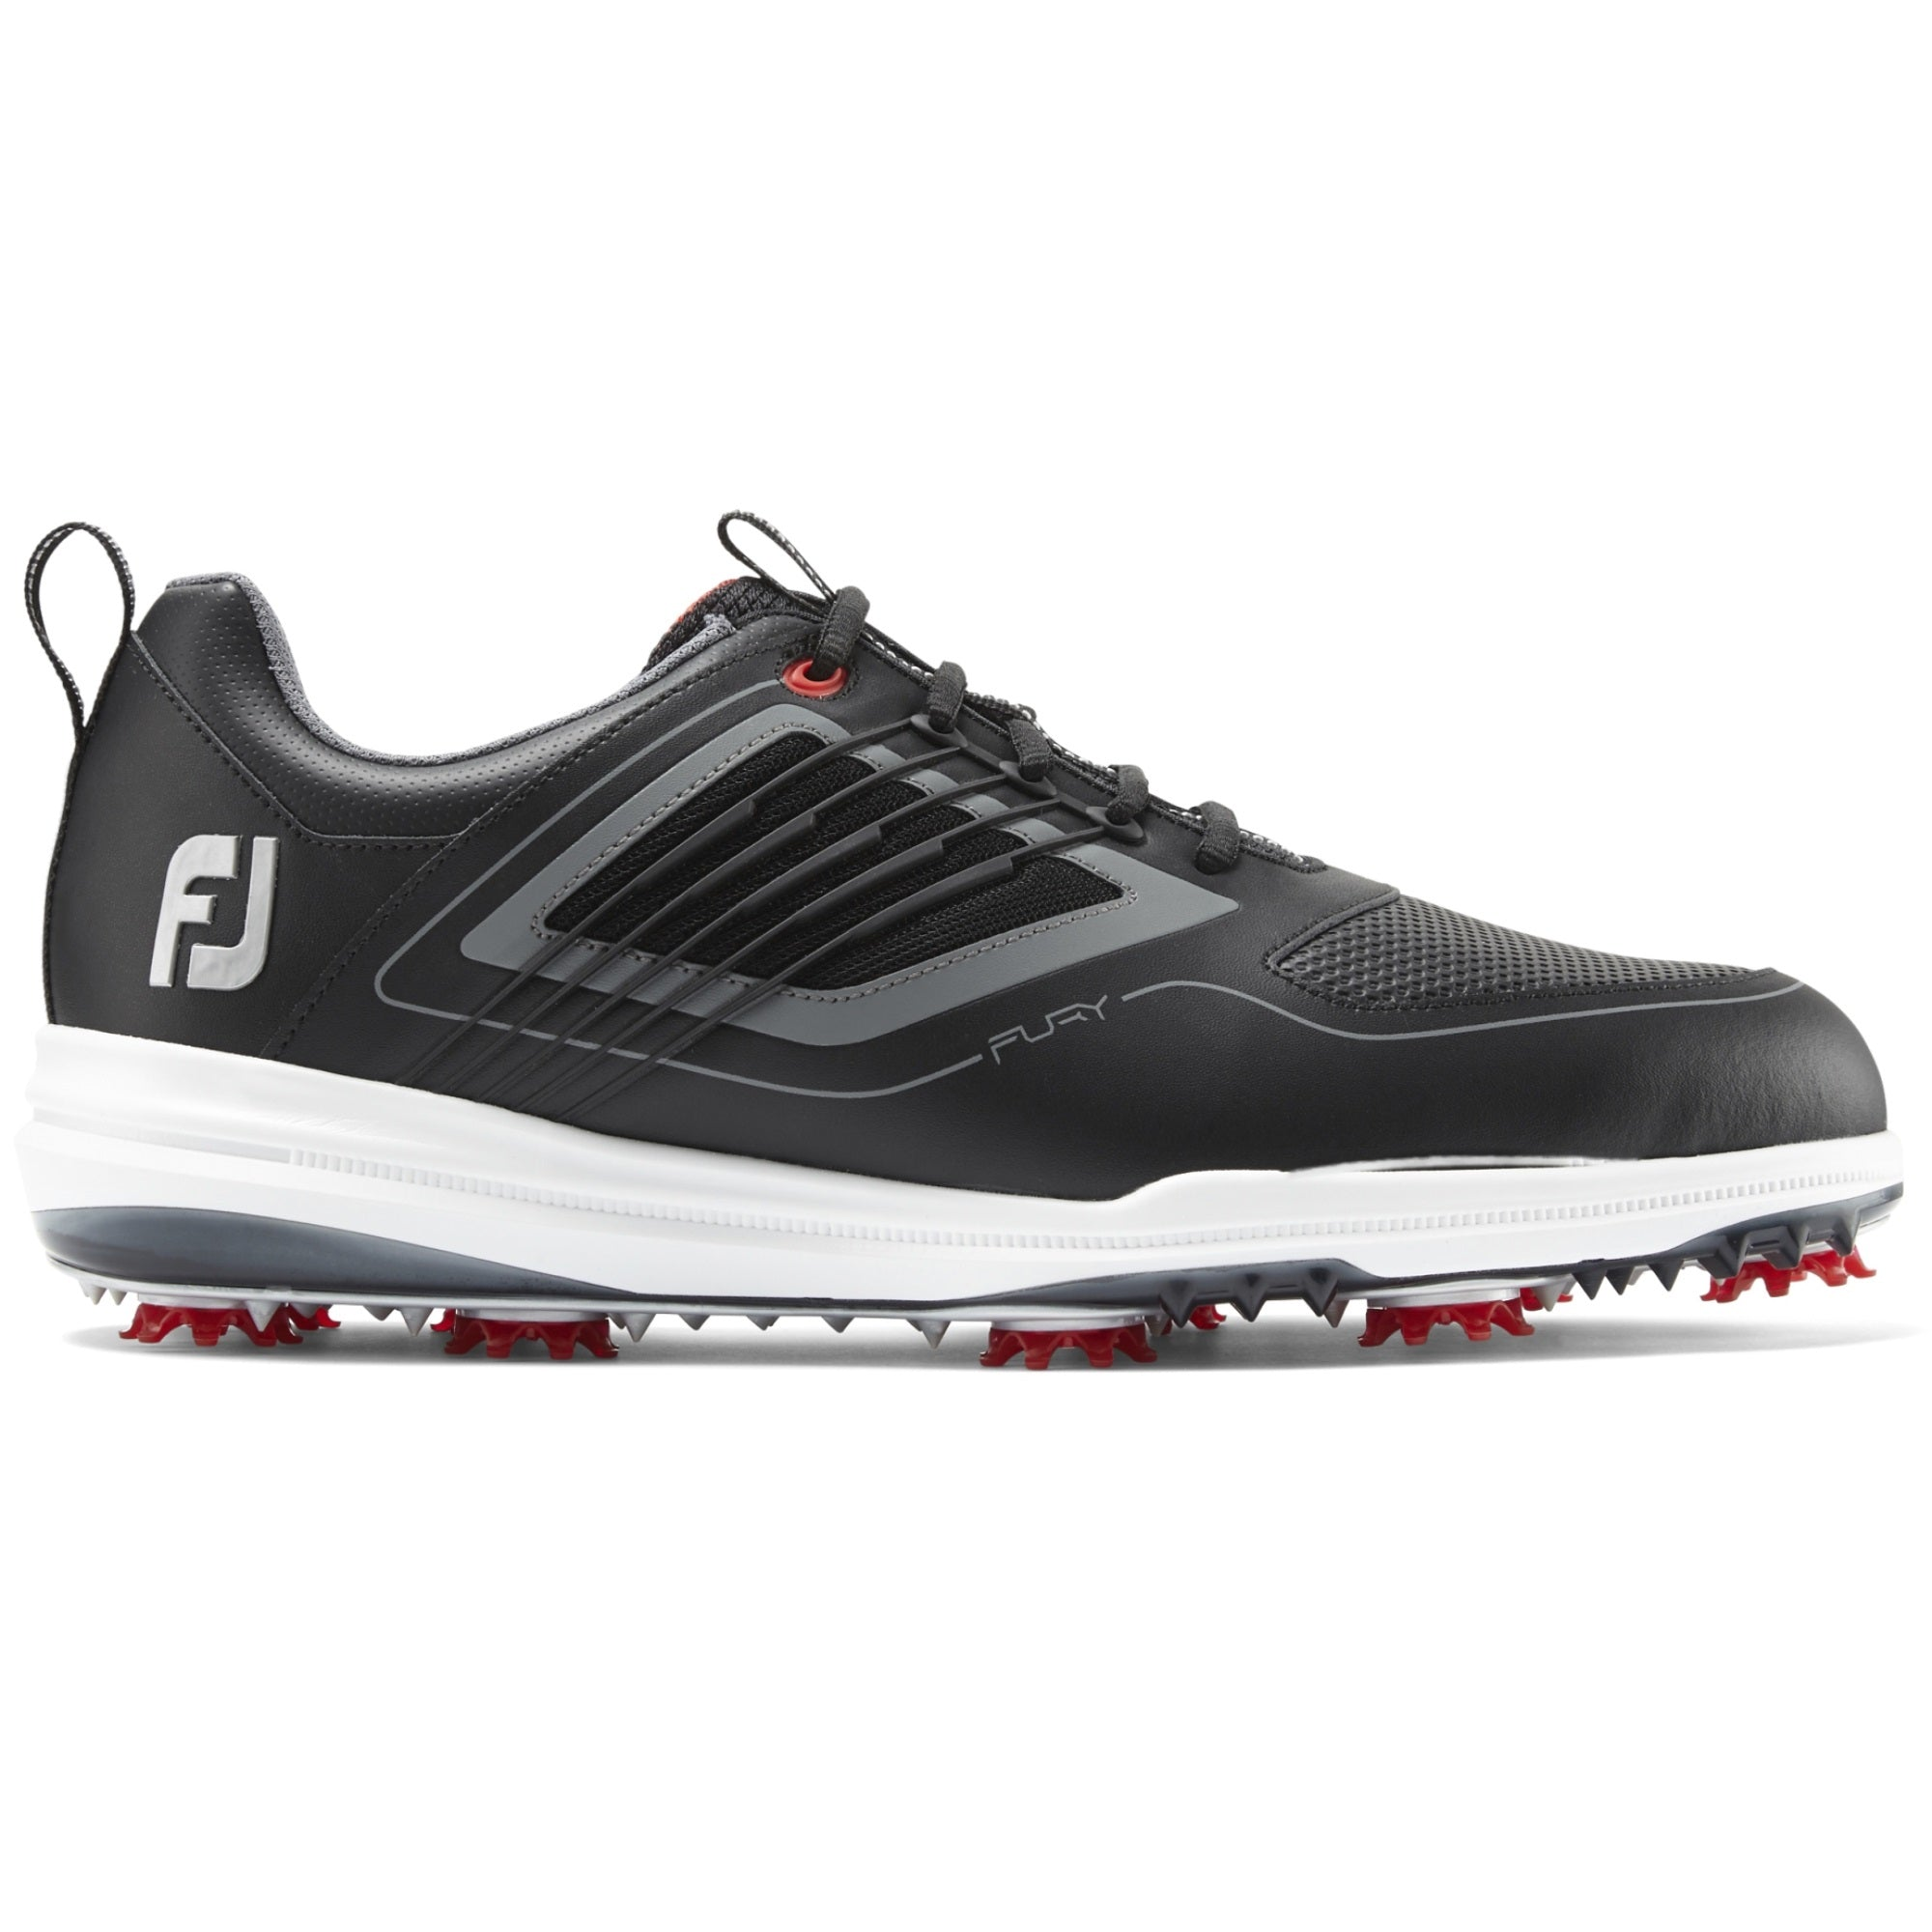 FootJoy Fury Golf Shoe 51103